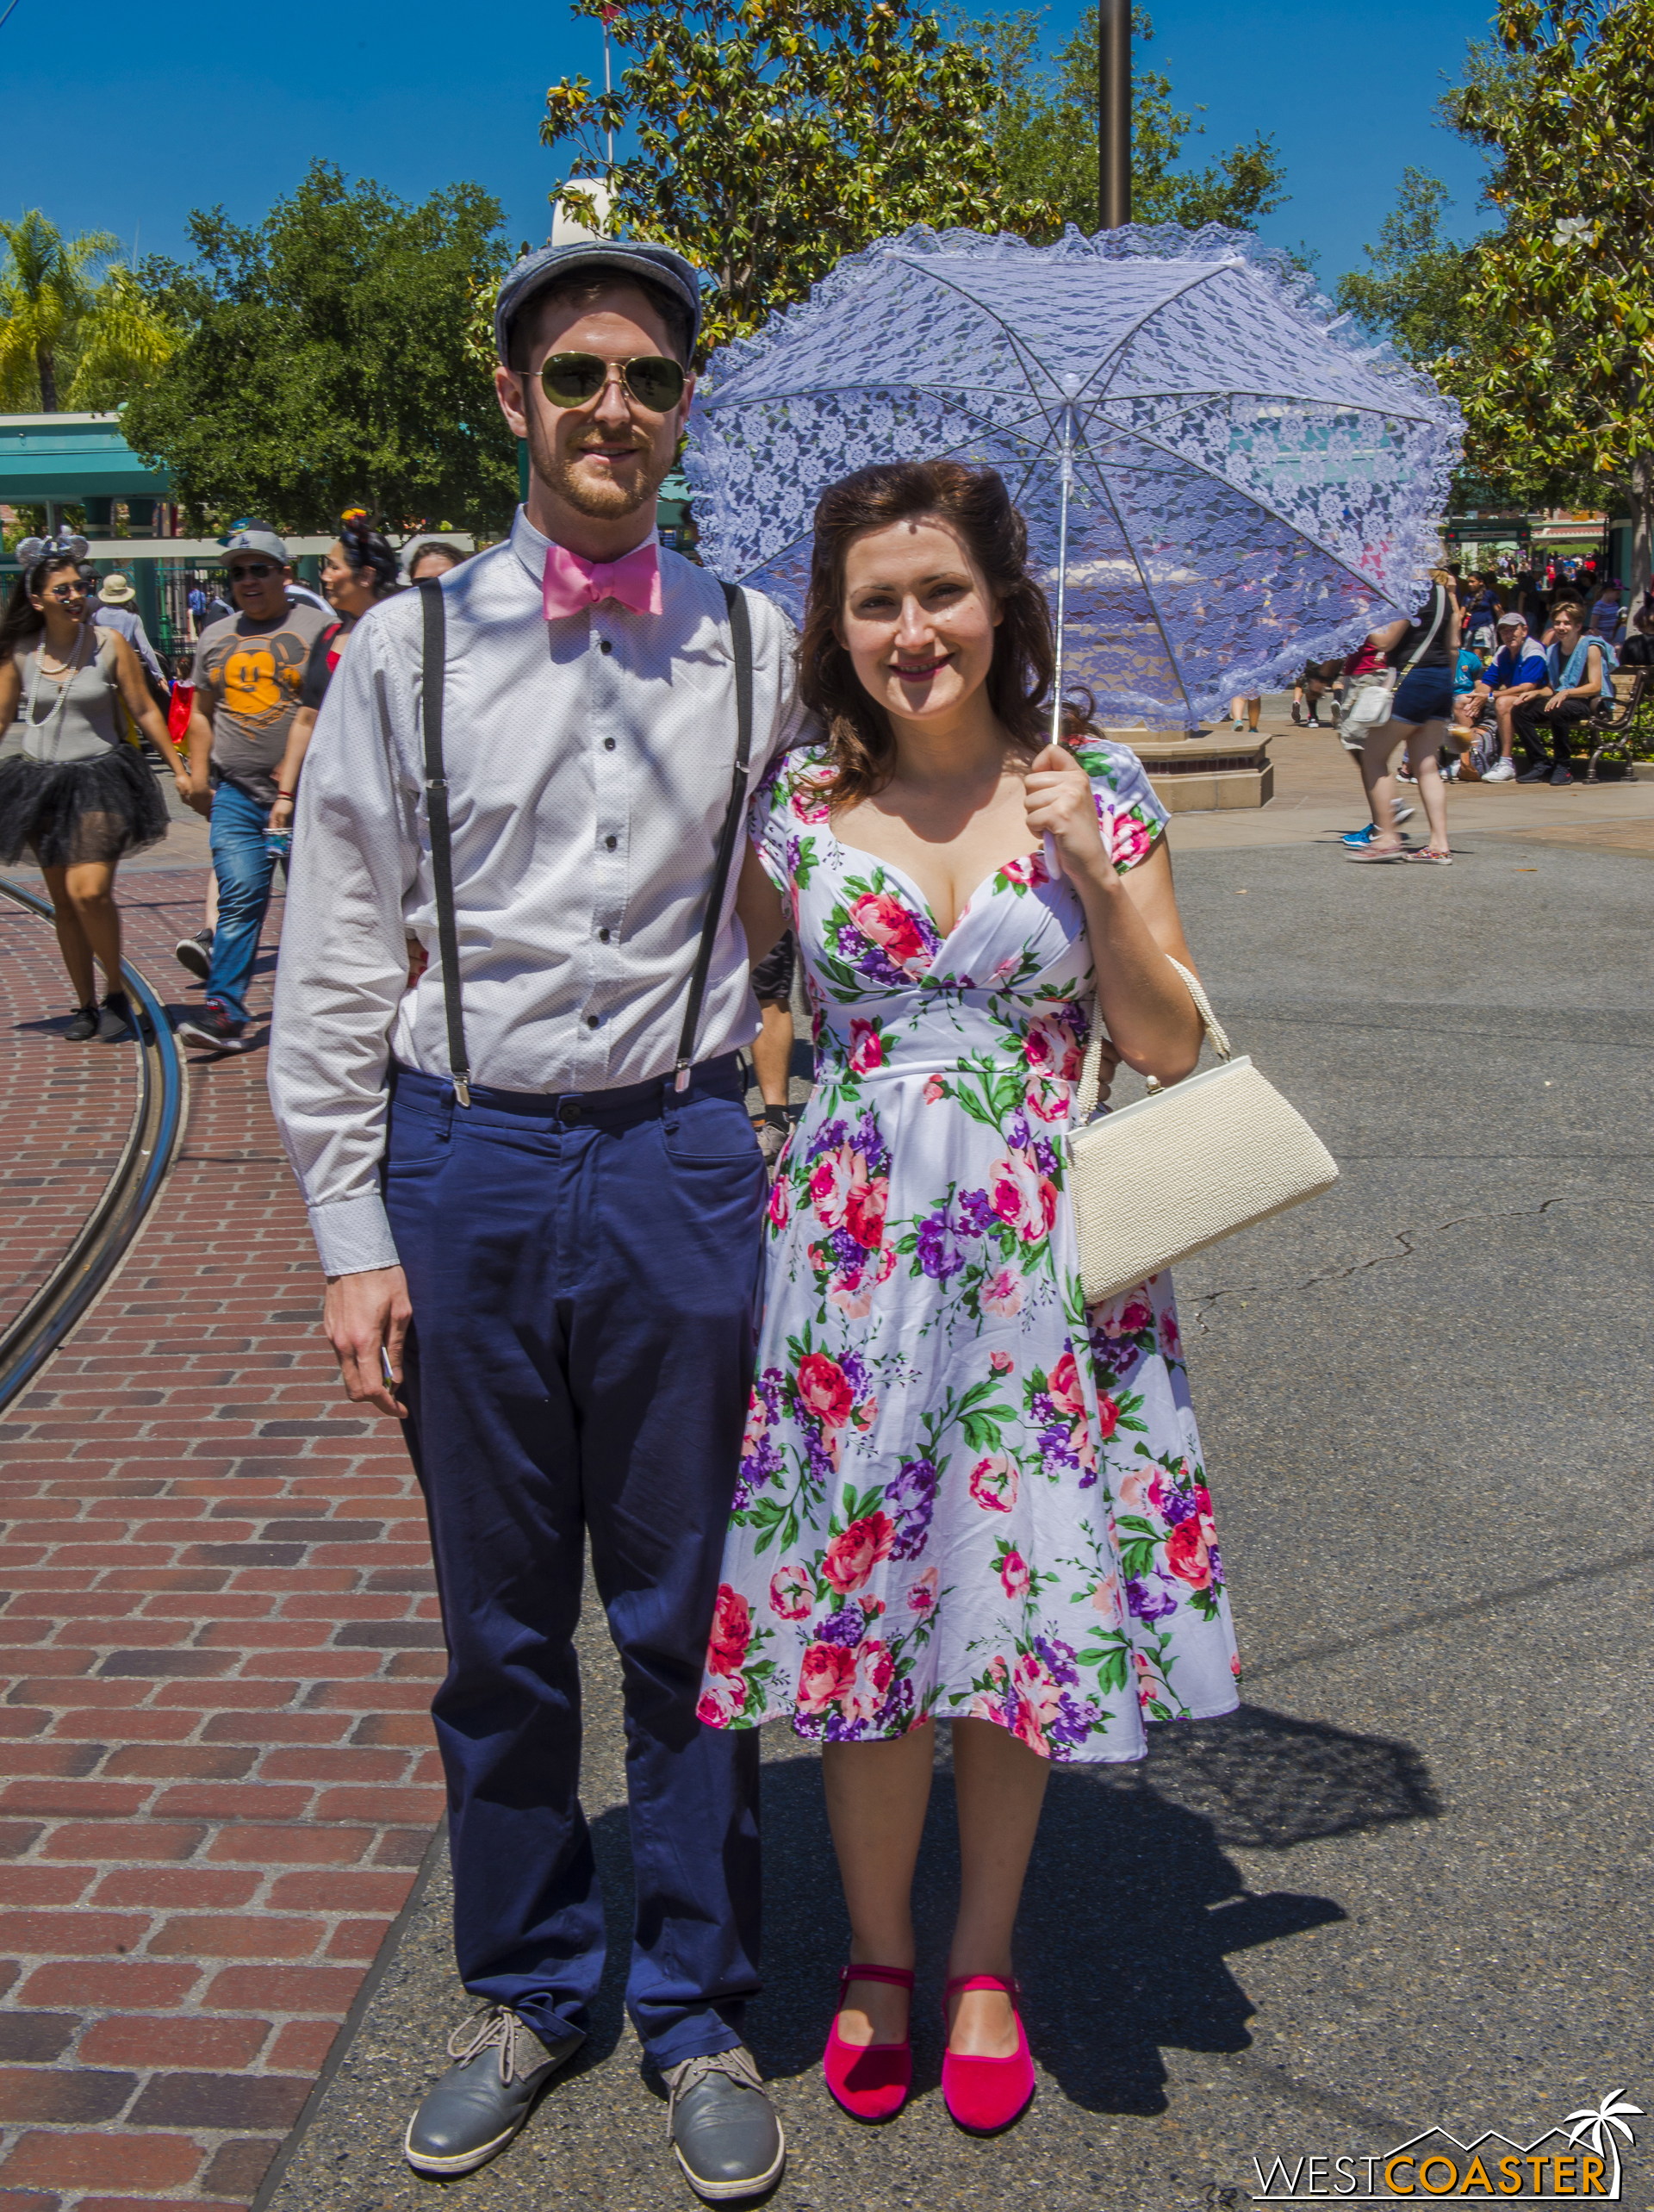 Looking stylish is the name of the game at Dapper Day, and plenty of people find diverse ways of accomplishing this.